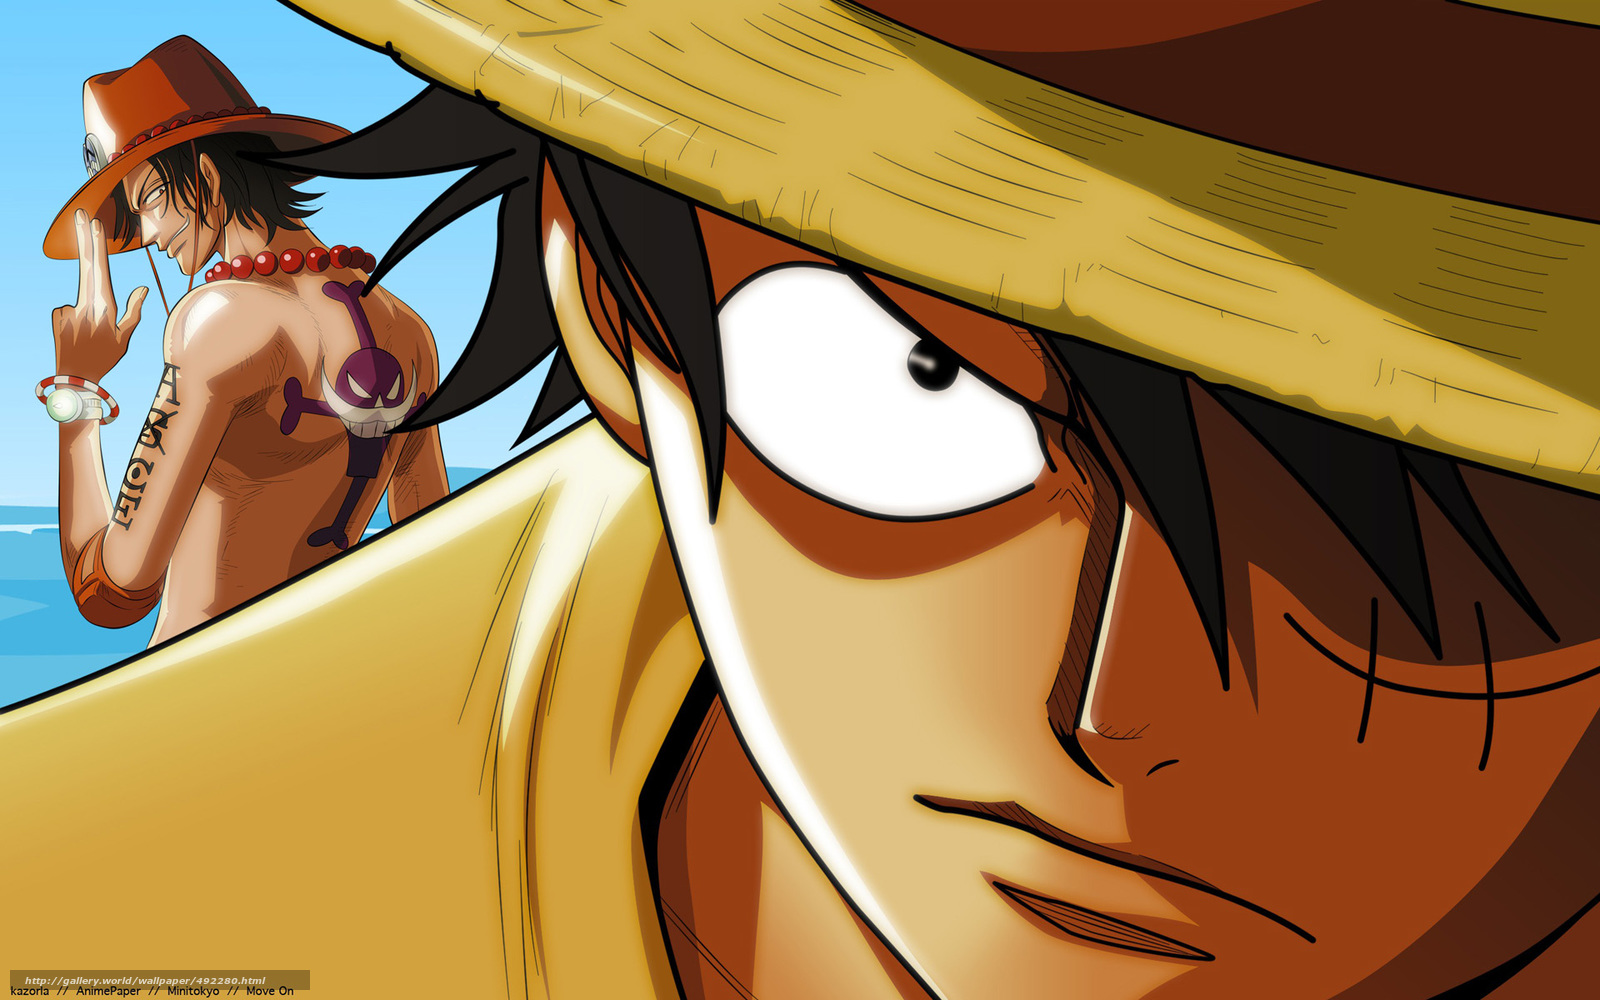 Download wallpaper one piece: luffy et asce, luffy, asce ...